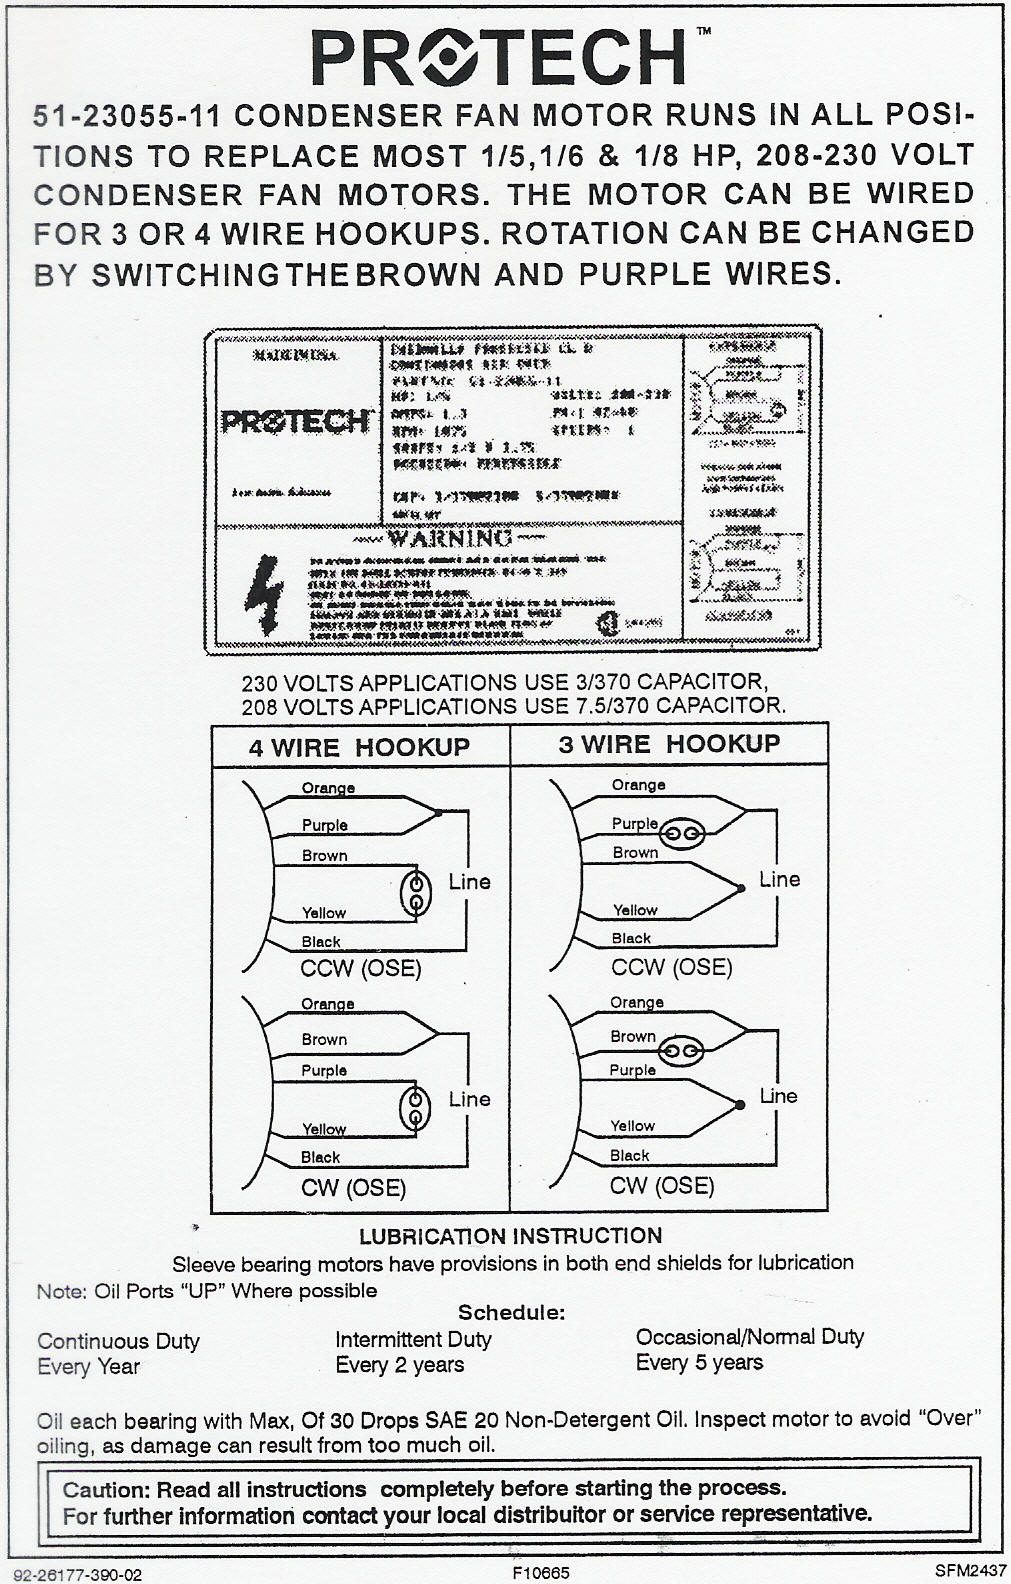 51 23055 11 wiring diagram rheem ruud condenser fan motor 51 23055 11 wiring diagram tempstar 2200 air conditioner wiring diagram at panicattacktreatment.co